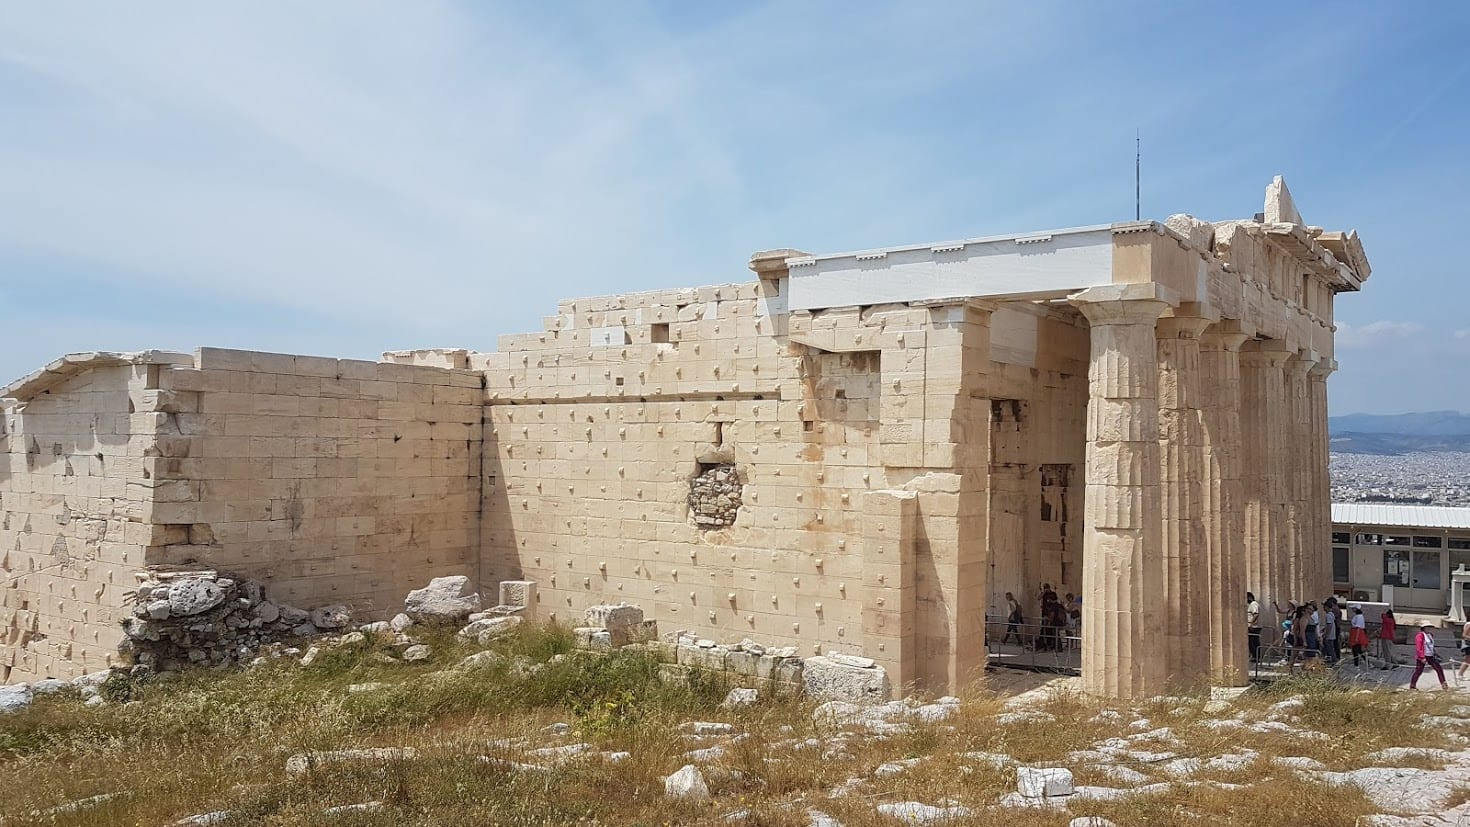 The Acropolis Gateway in Athens